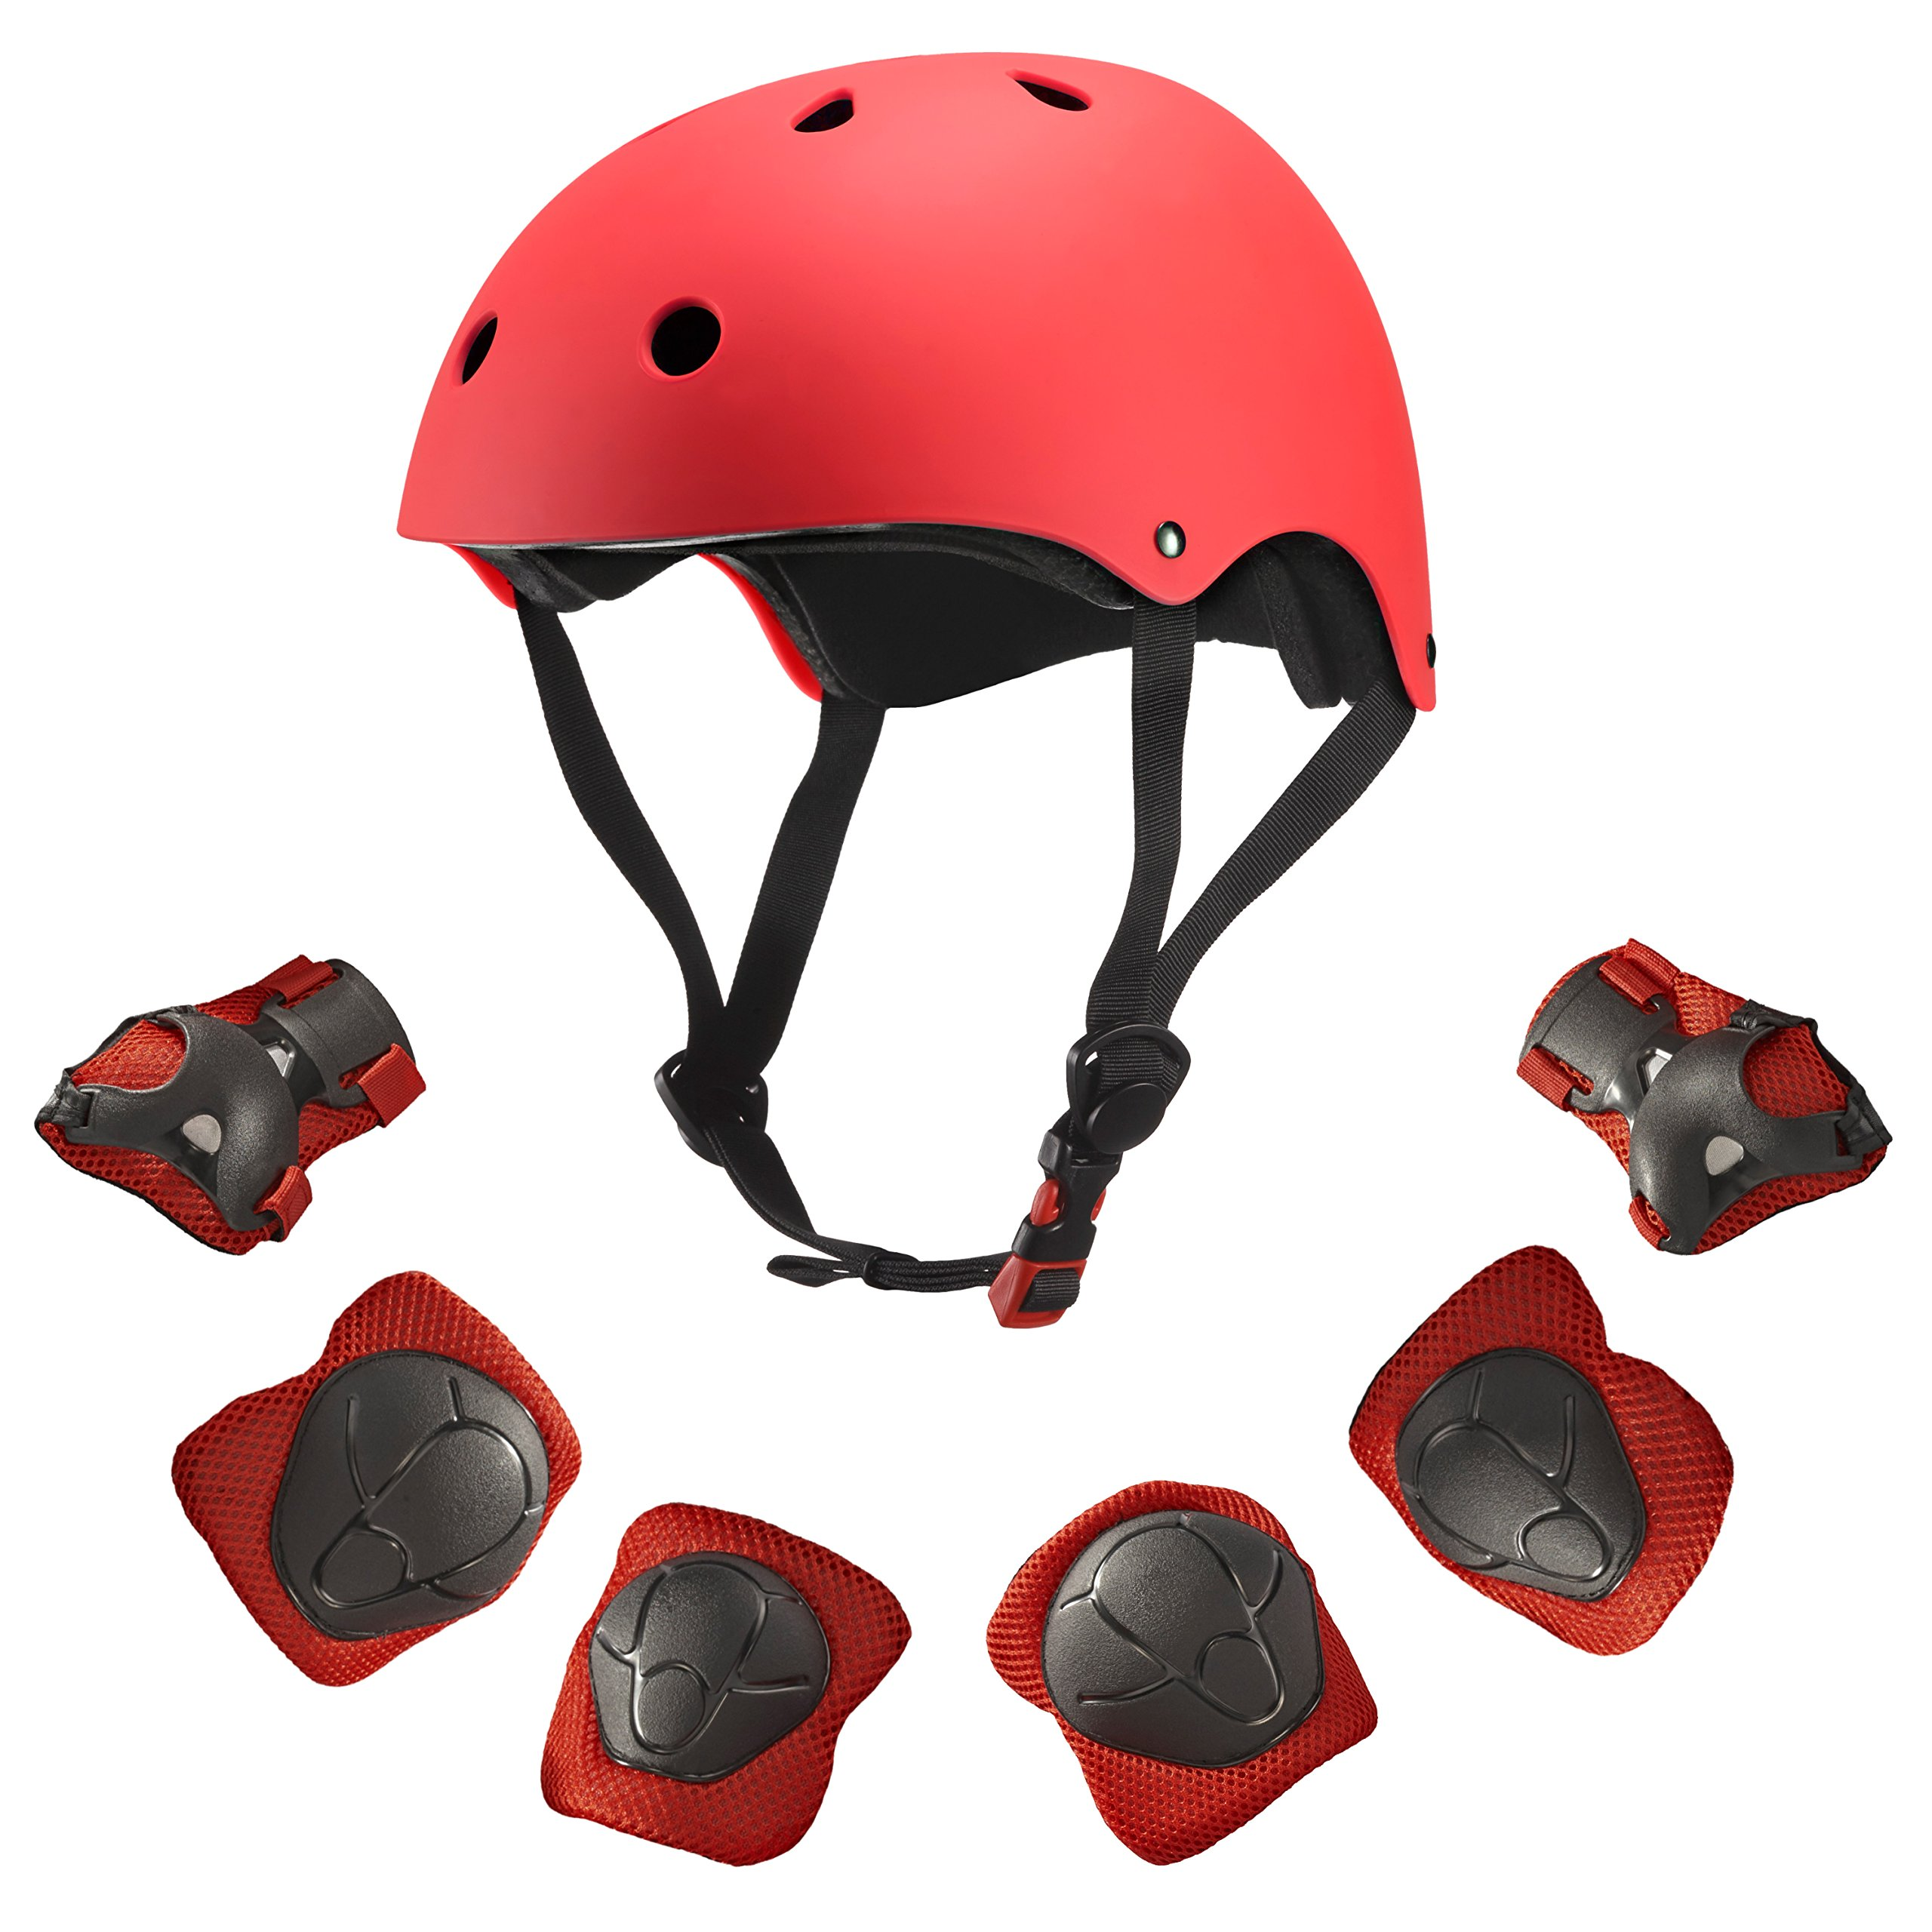 Dostar Kids Youth Adjustable Sports Protective Gear Set Safety Pad Safeguard (Helmet Knee Elbow Wrist) Roller Bicycle BMX Bike Skateboard Hoverboard and Other Extreme Sports Activities (Red) by Dostar